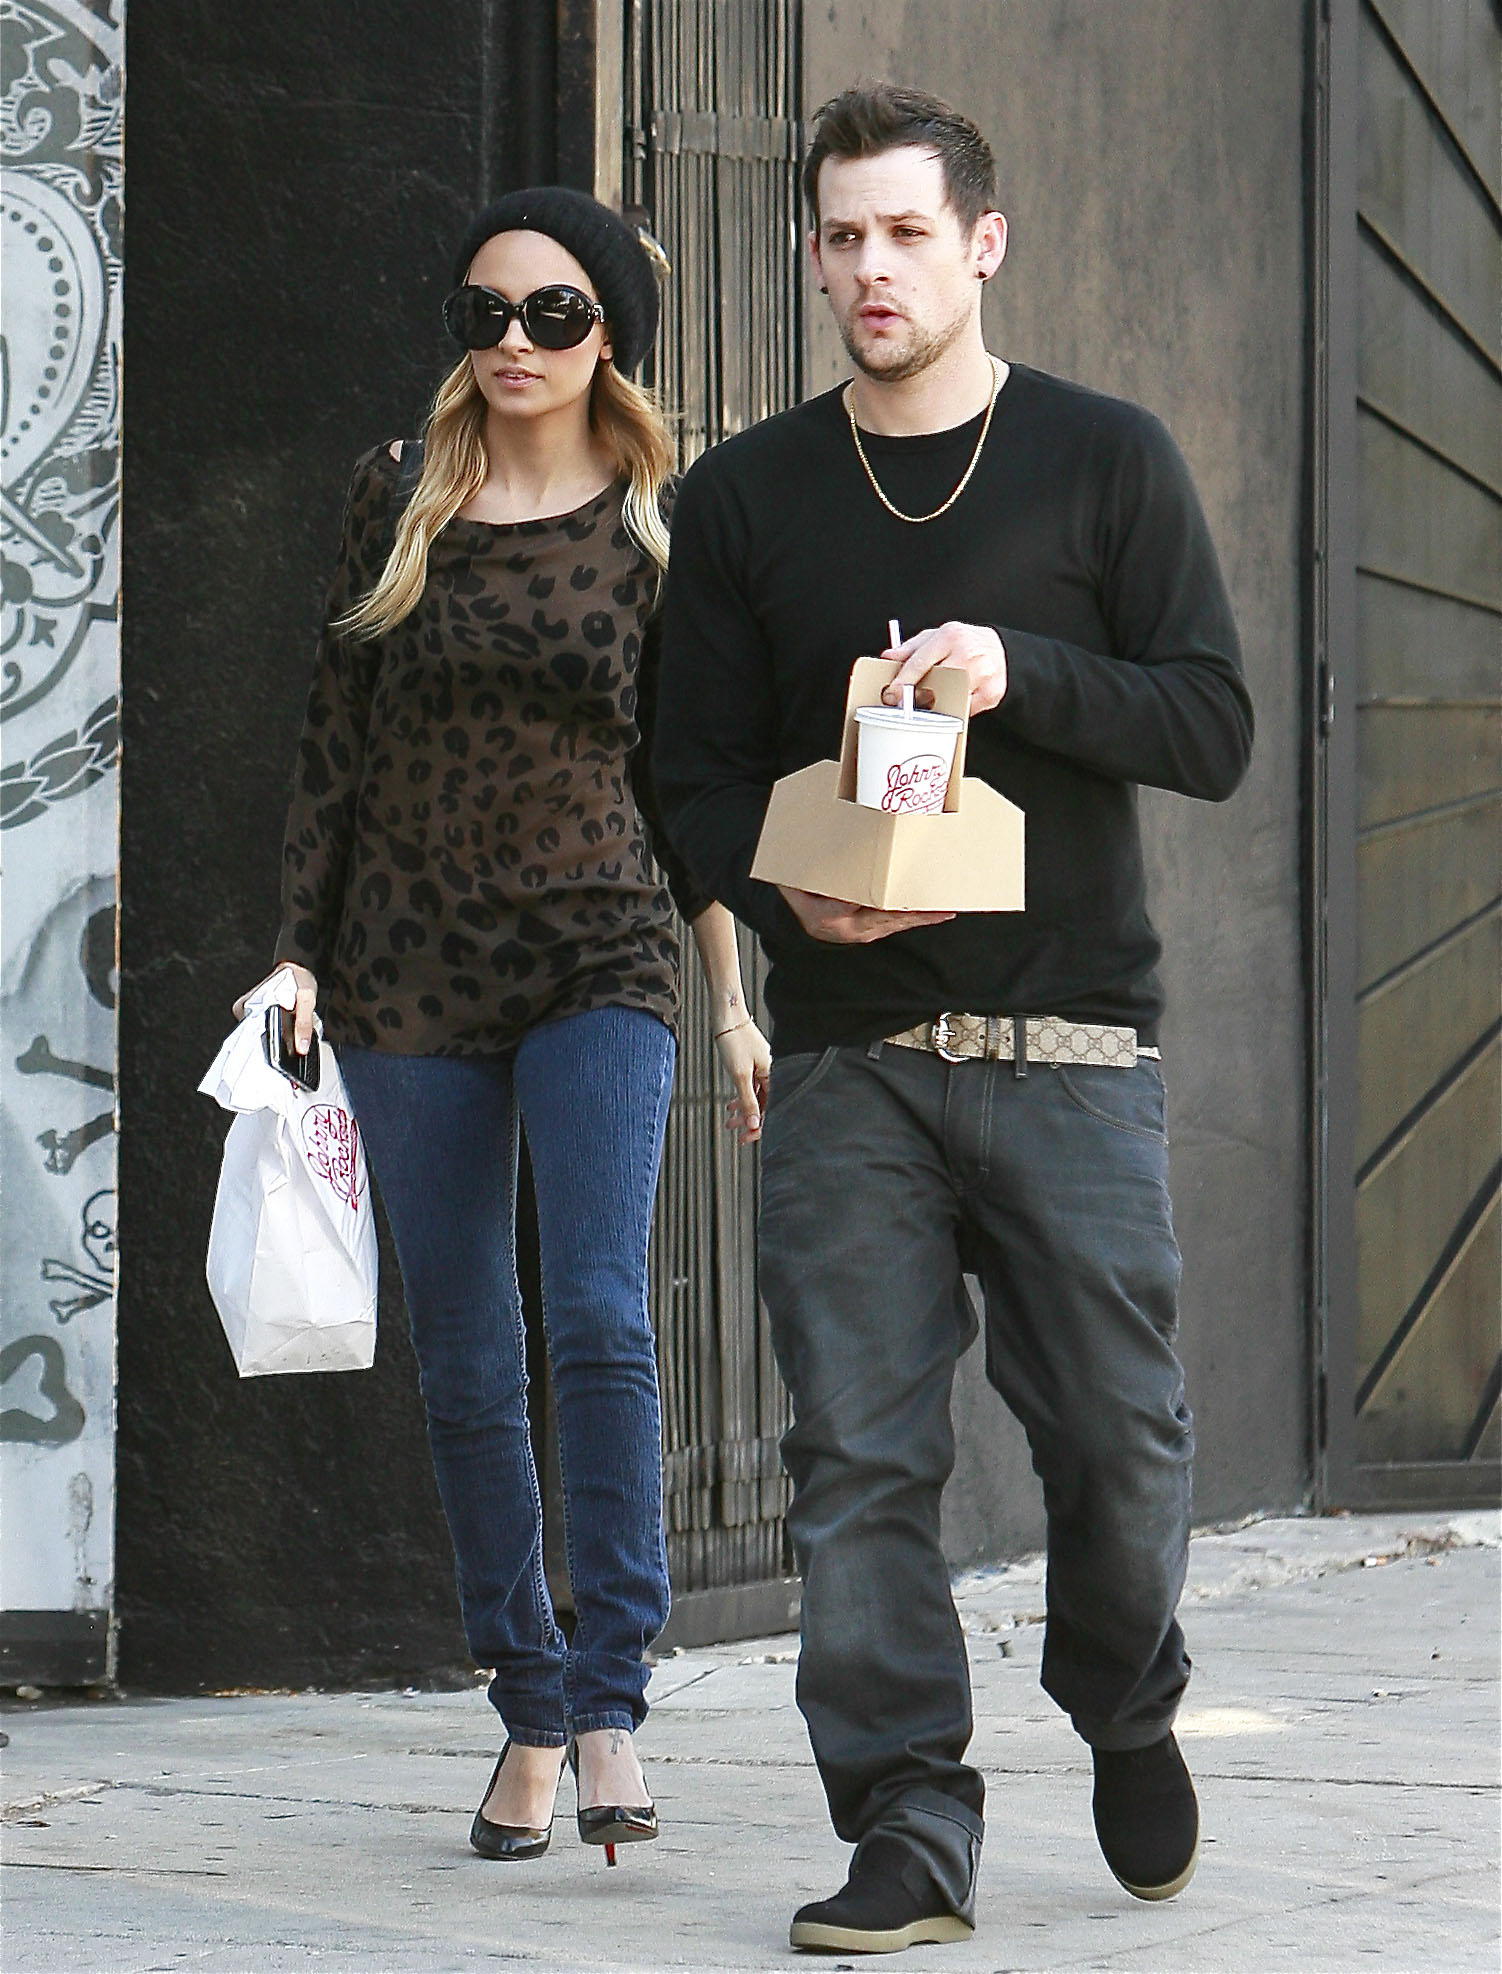 Hilary Duff Joel Madden Age Difference Nicole and joel are spotted inHilary Duff Joel Madden Age Difference